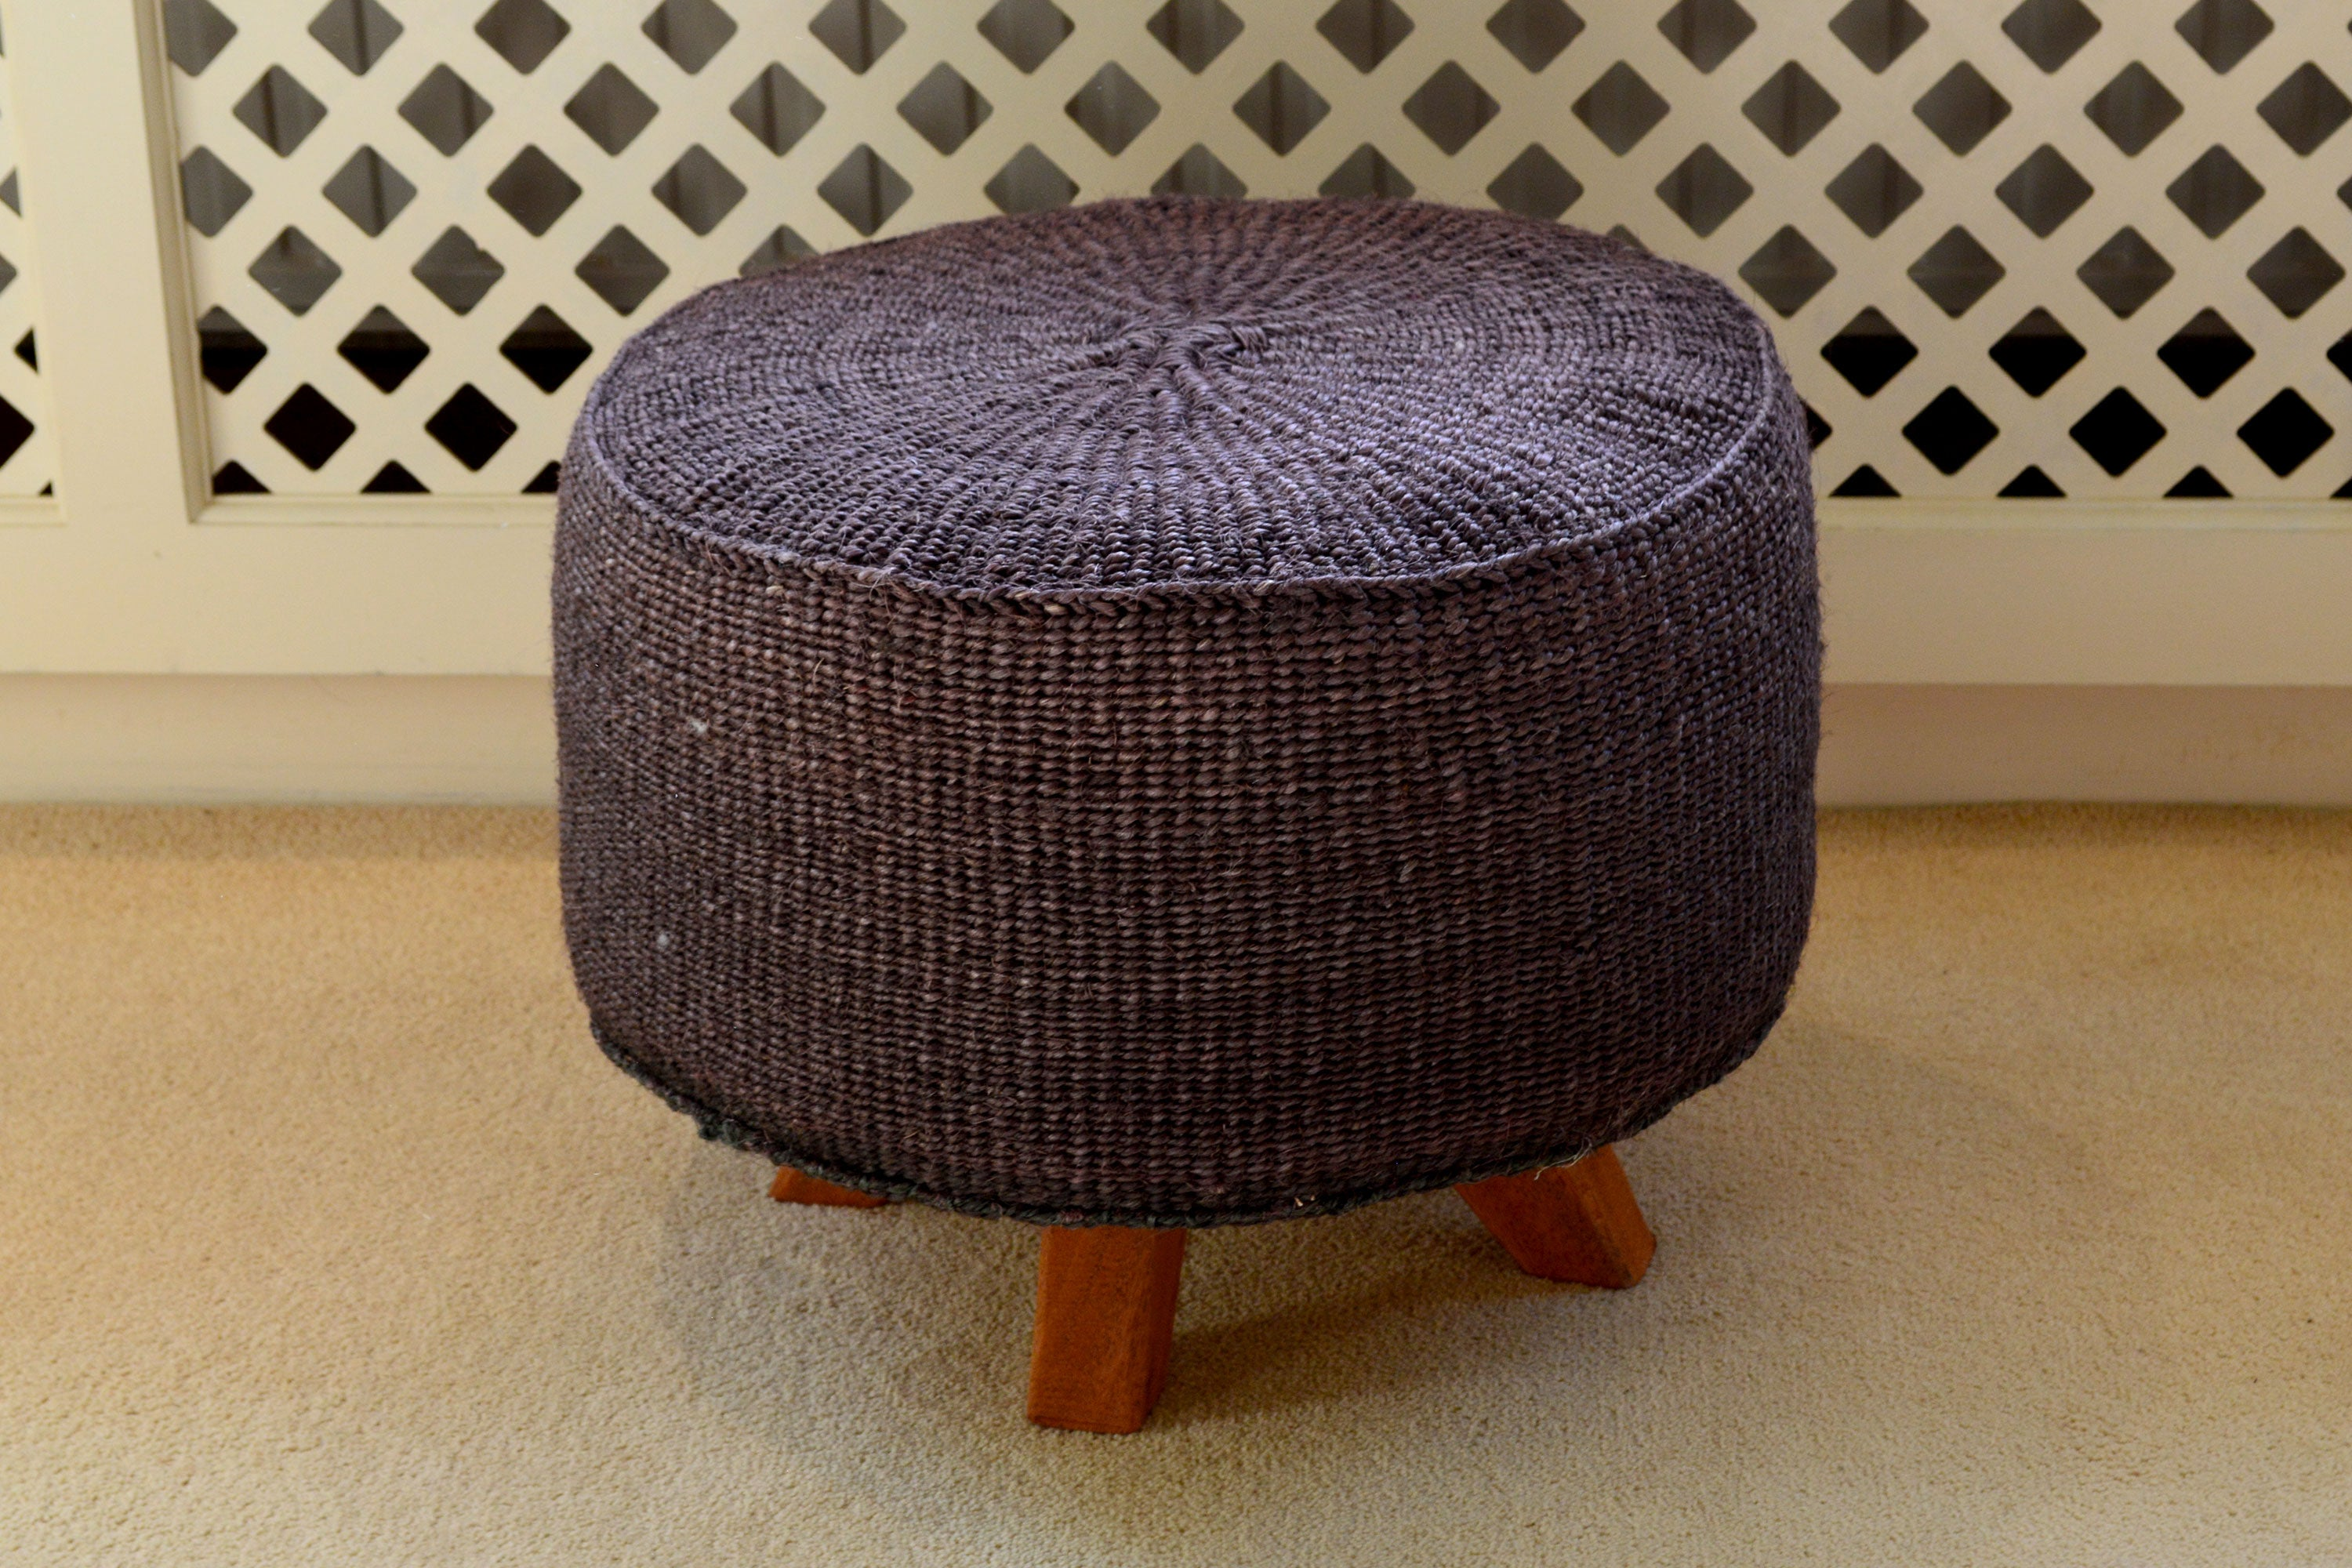 Medium Sisal Stool, in Graphite